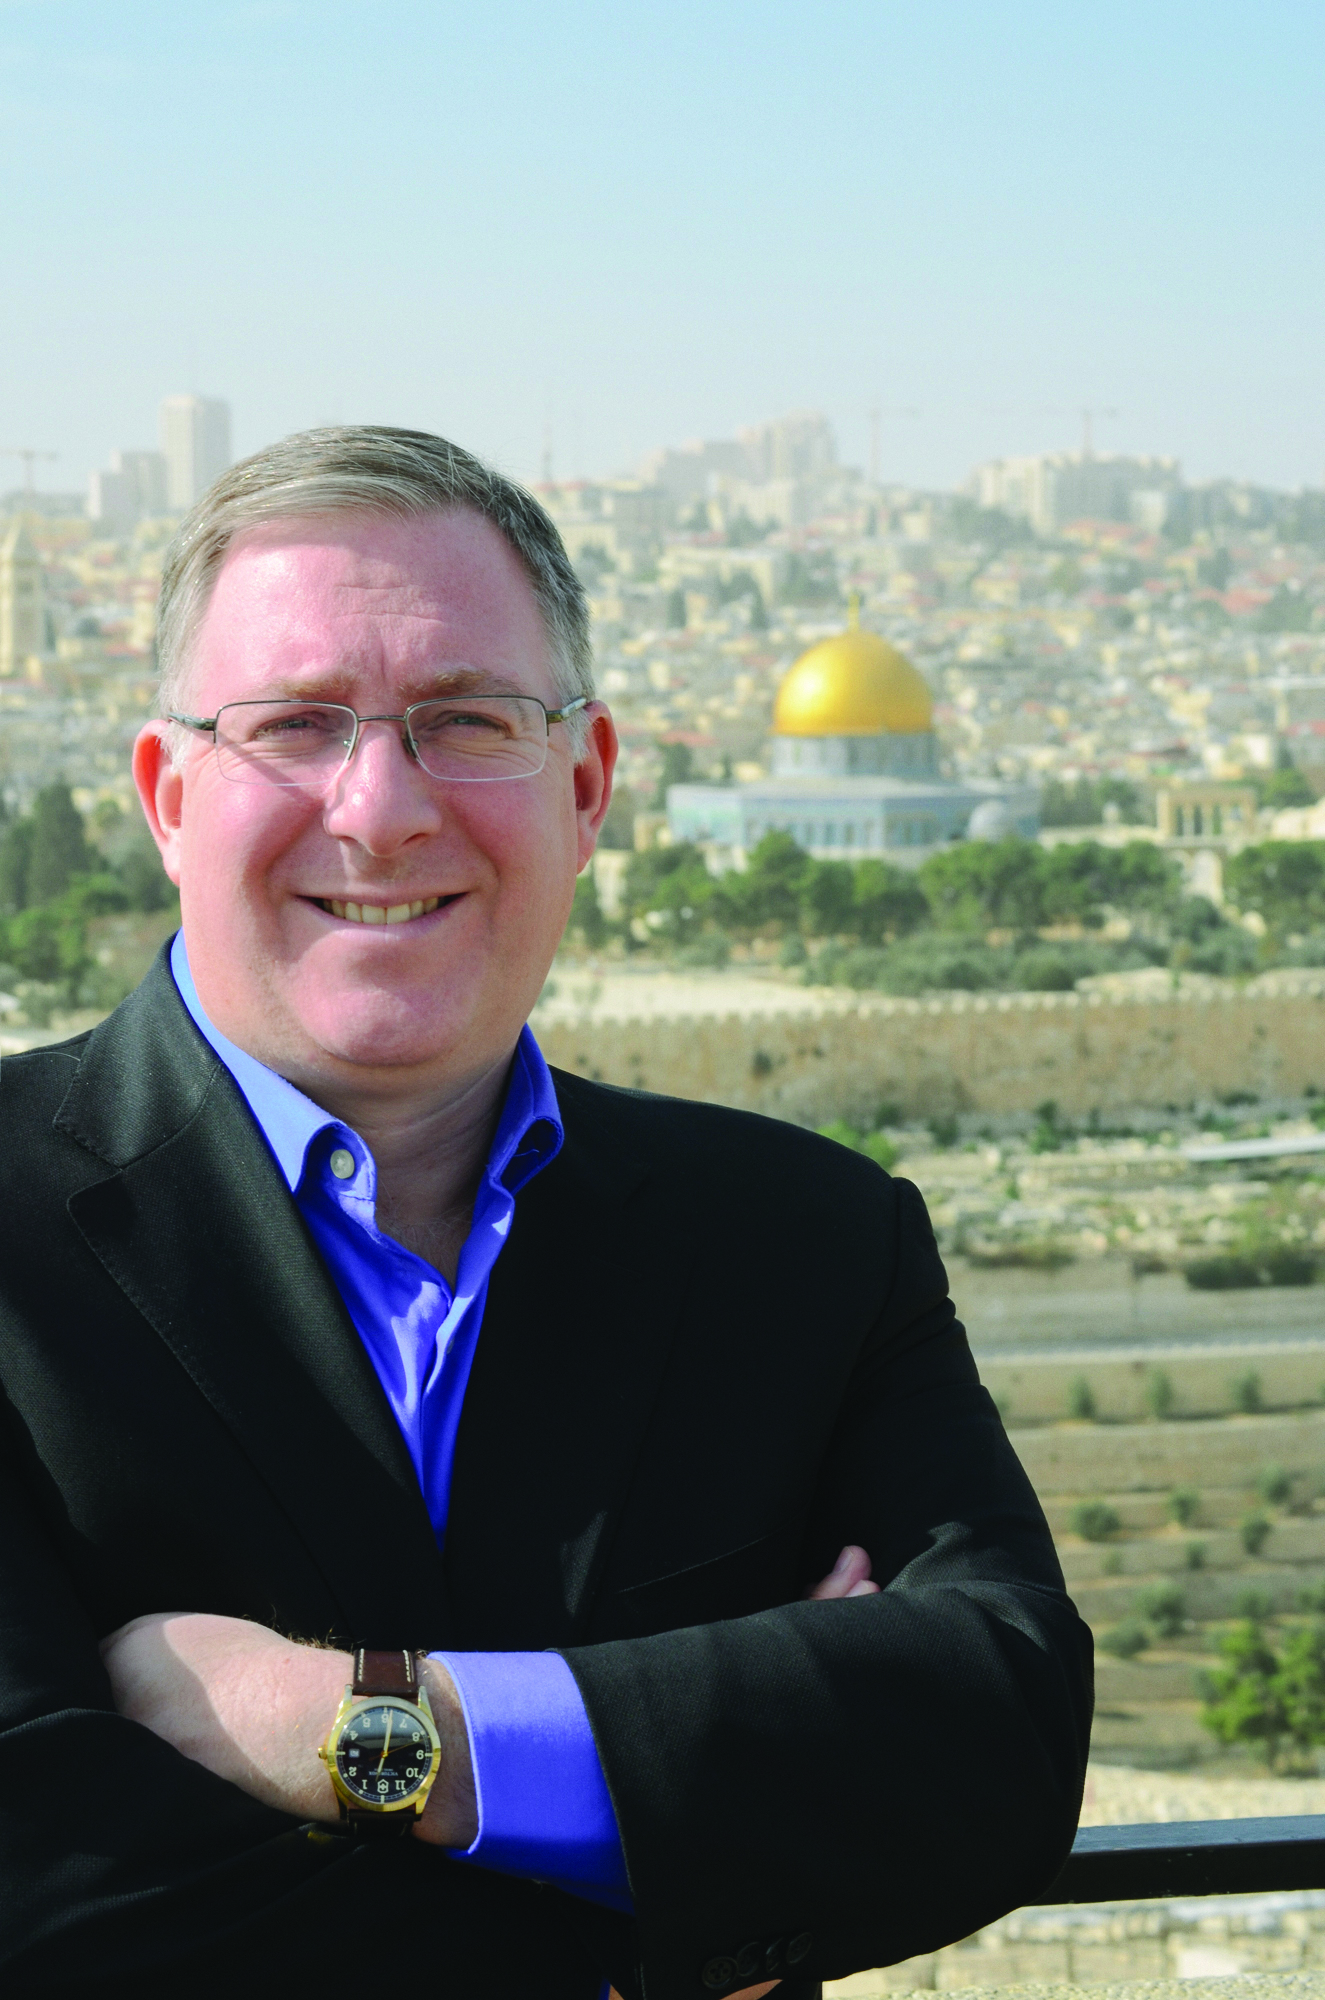 Event - Lecture and Book Signing with Joel Rosenberg